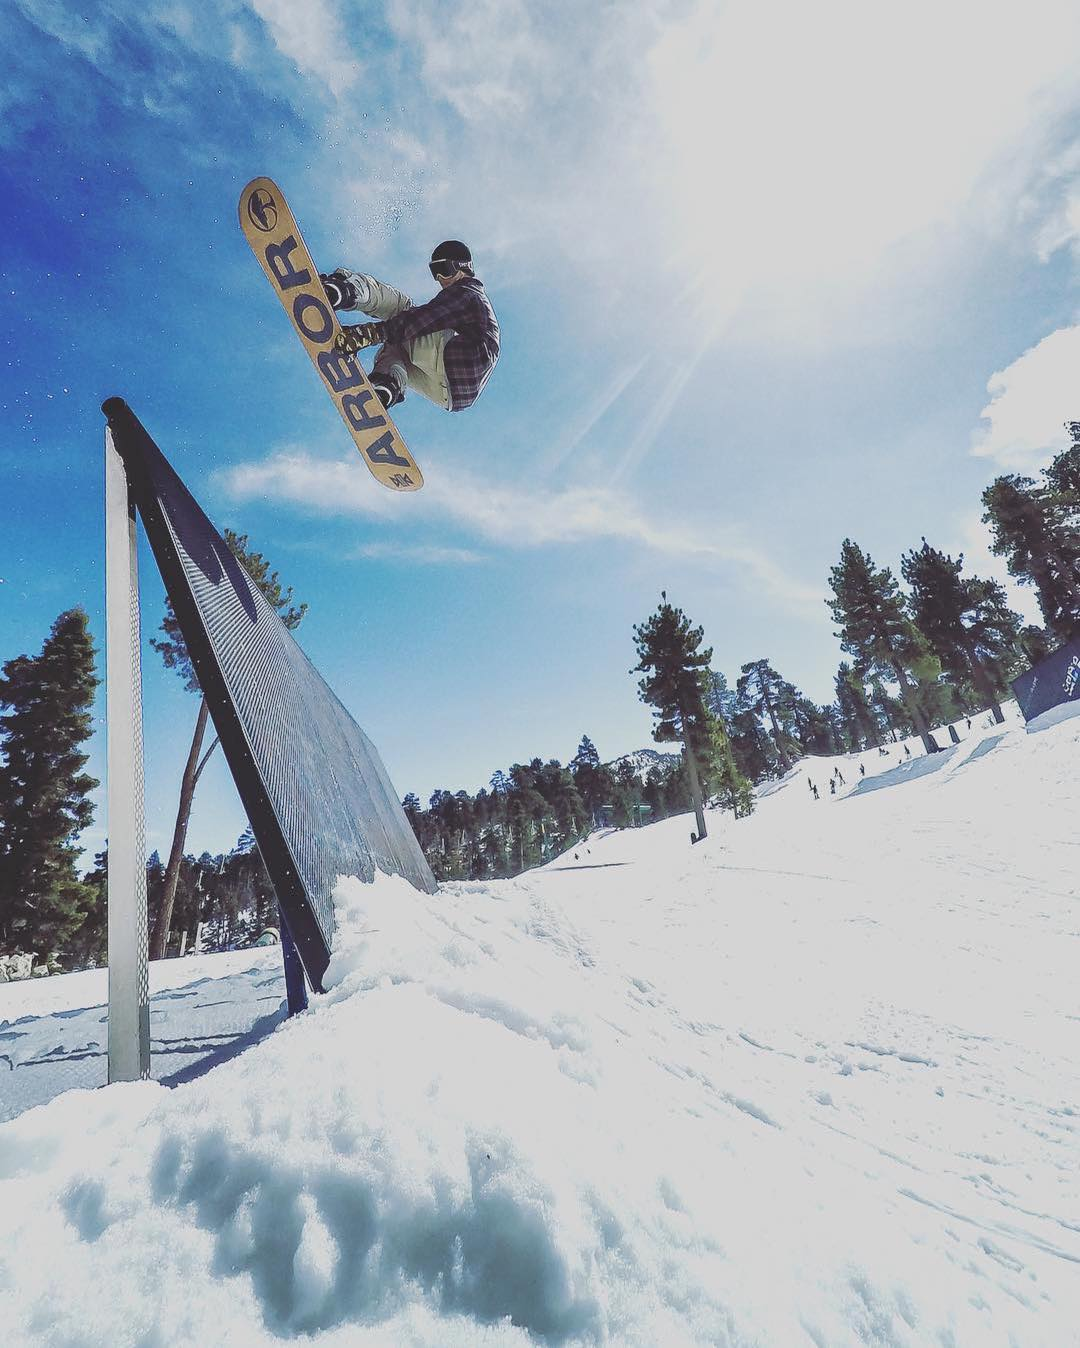 #Repost @jakeschaible ・・・ @bear_mountain #GoProPark